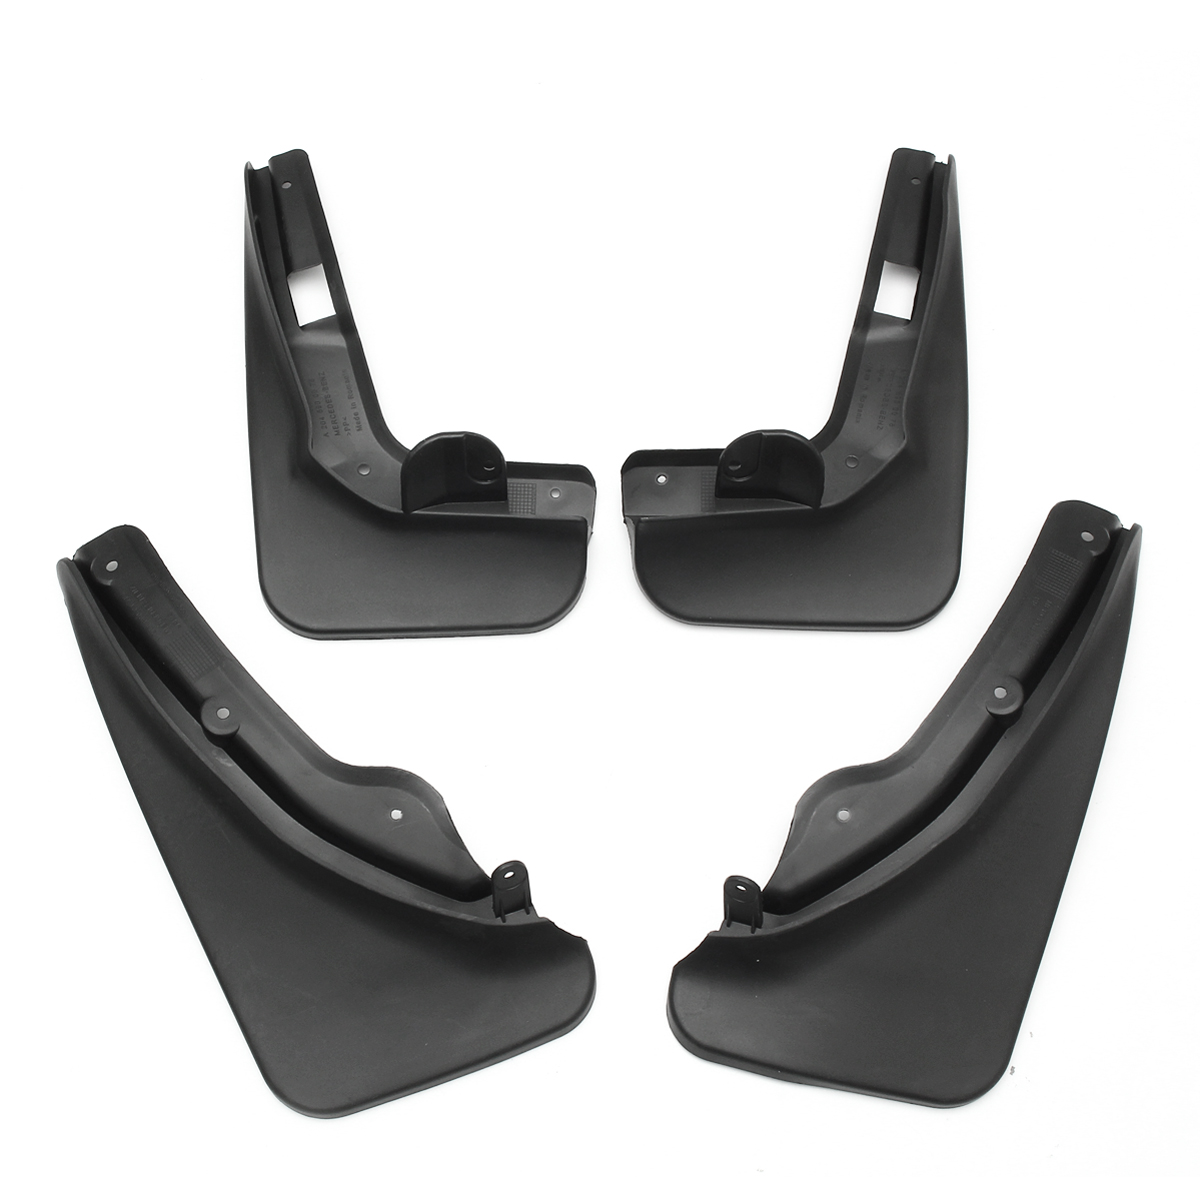 4Pcs Front Rear Car Mudguards For MERCEDES C CLASS W204 2008-2010